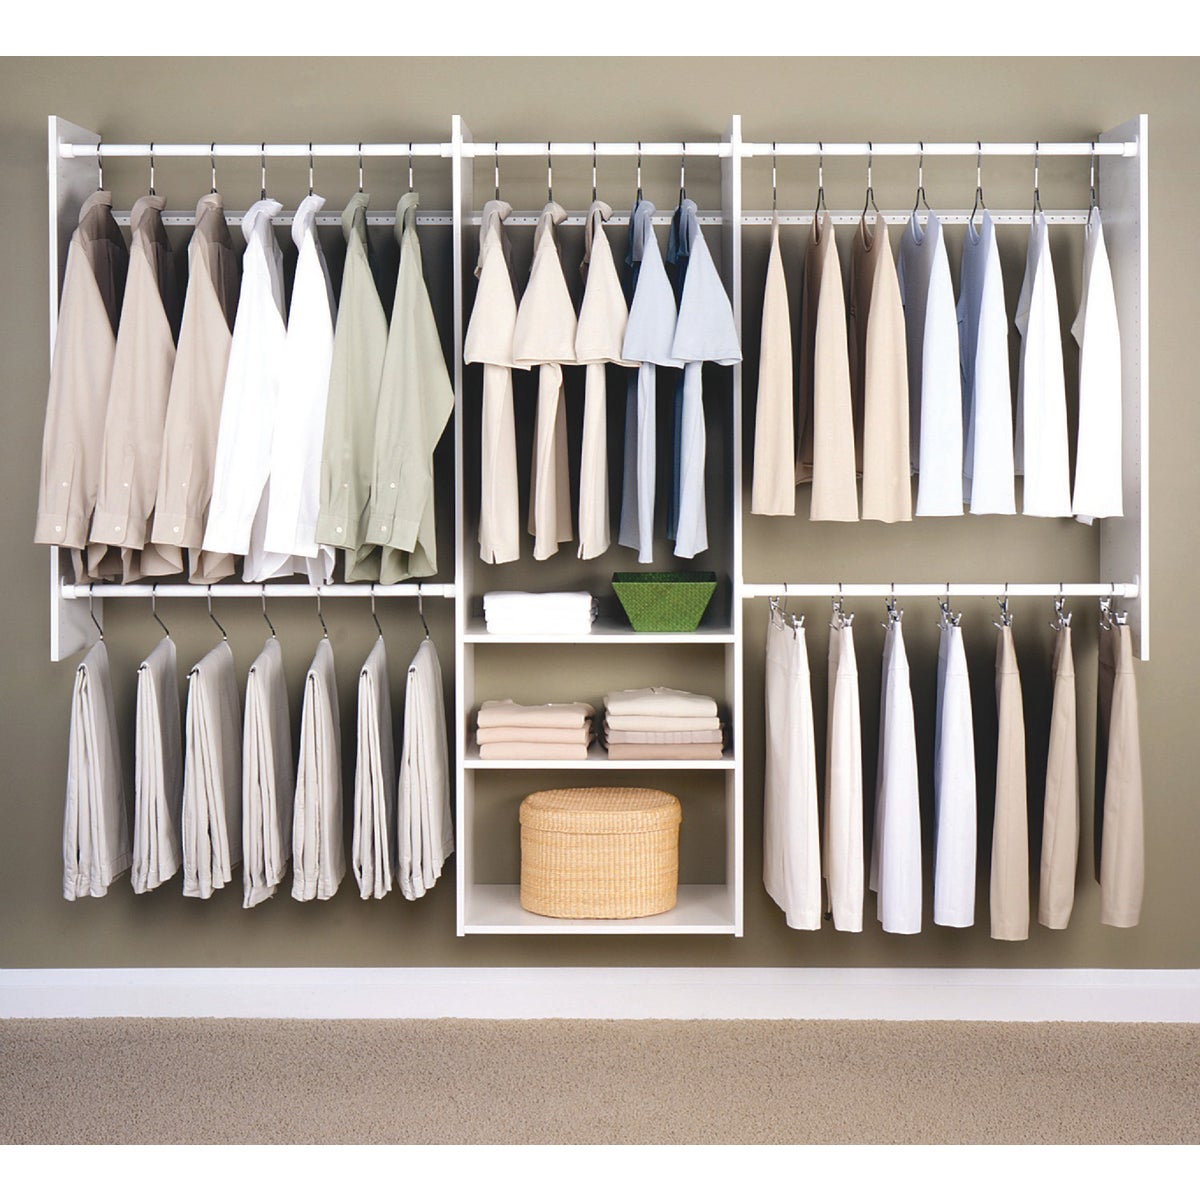 DELUXE STARTER CLOSET - RB1460 by The Stow Company